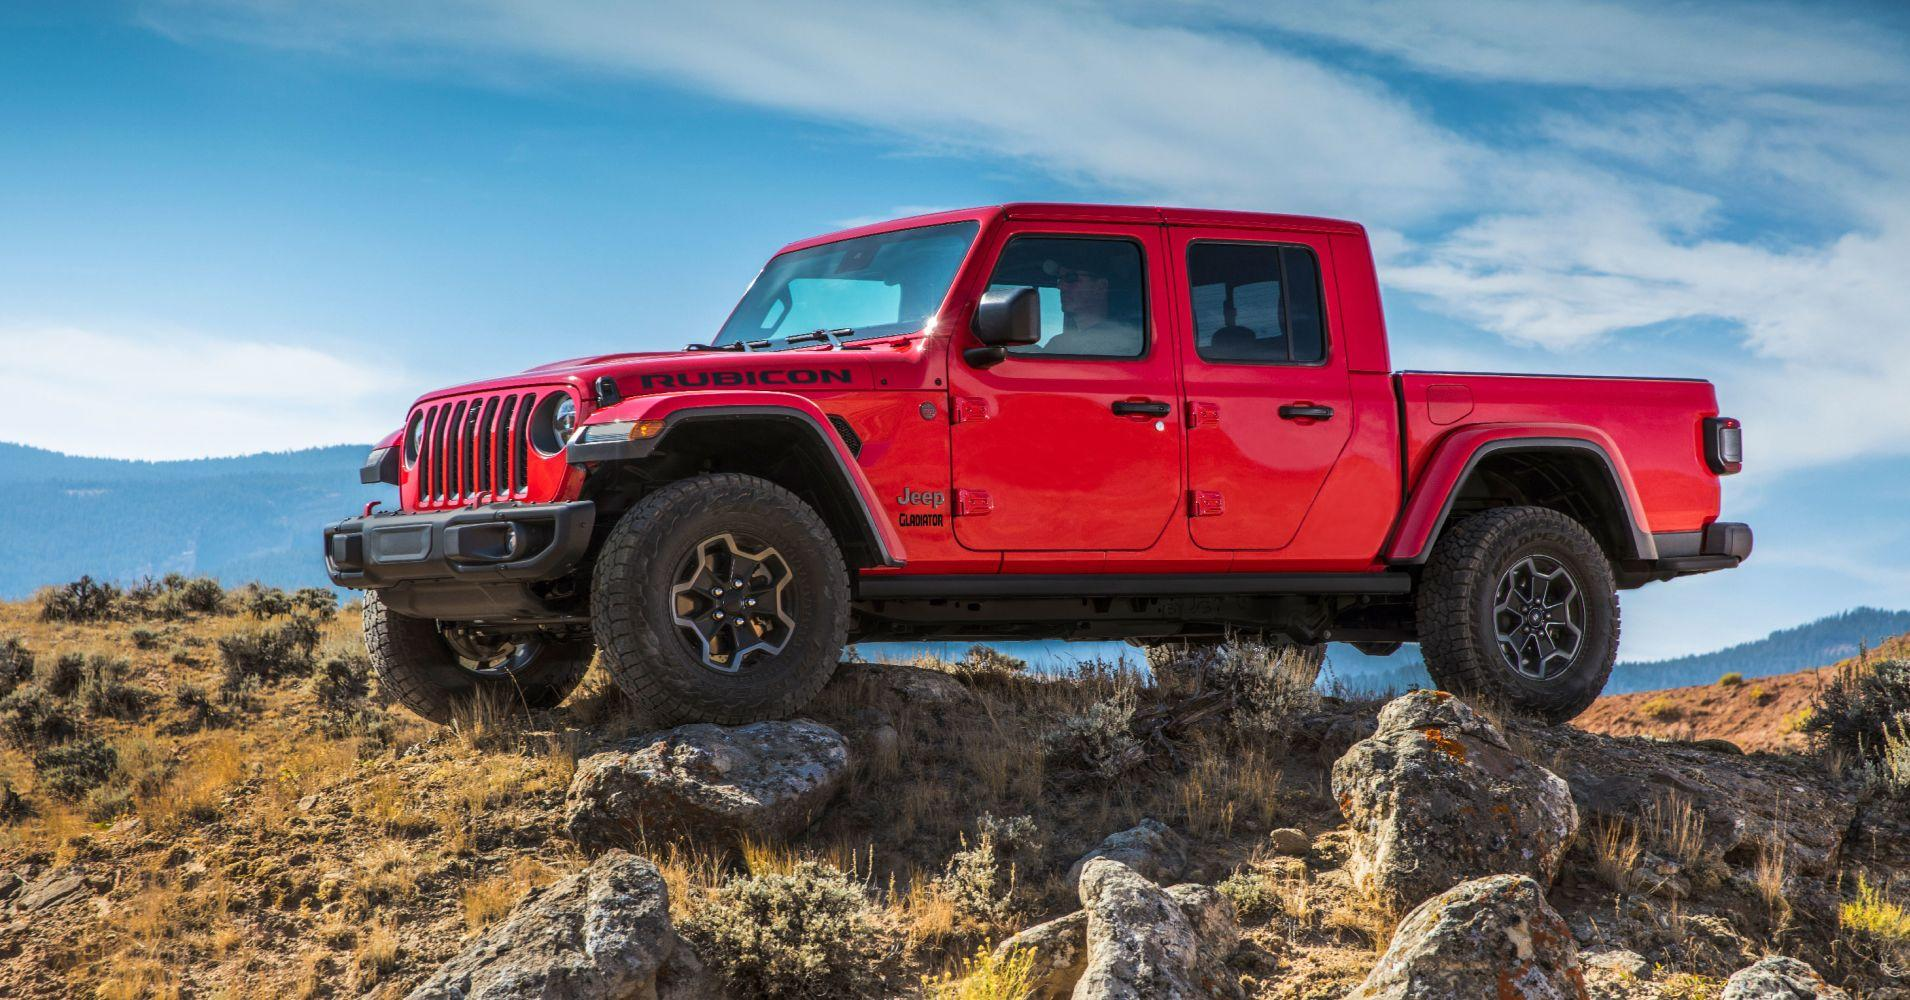 Part SUV, part pickup: Jeep makes a bold statement with its new Gladiator model